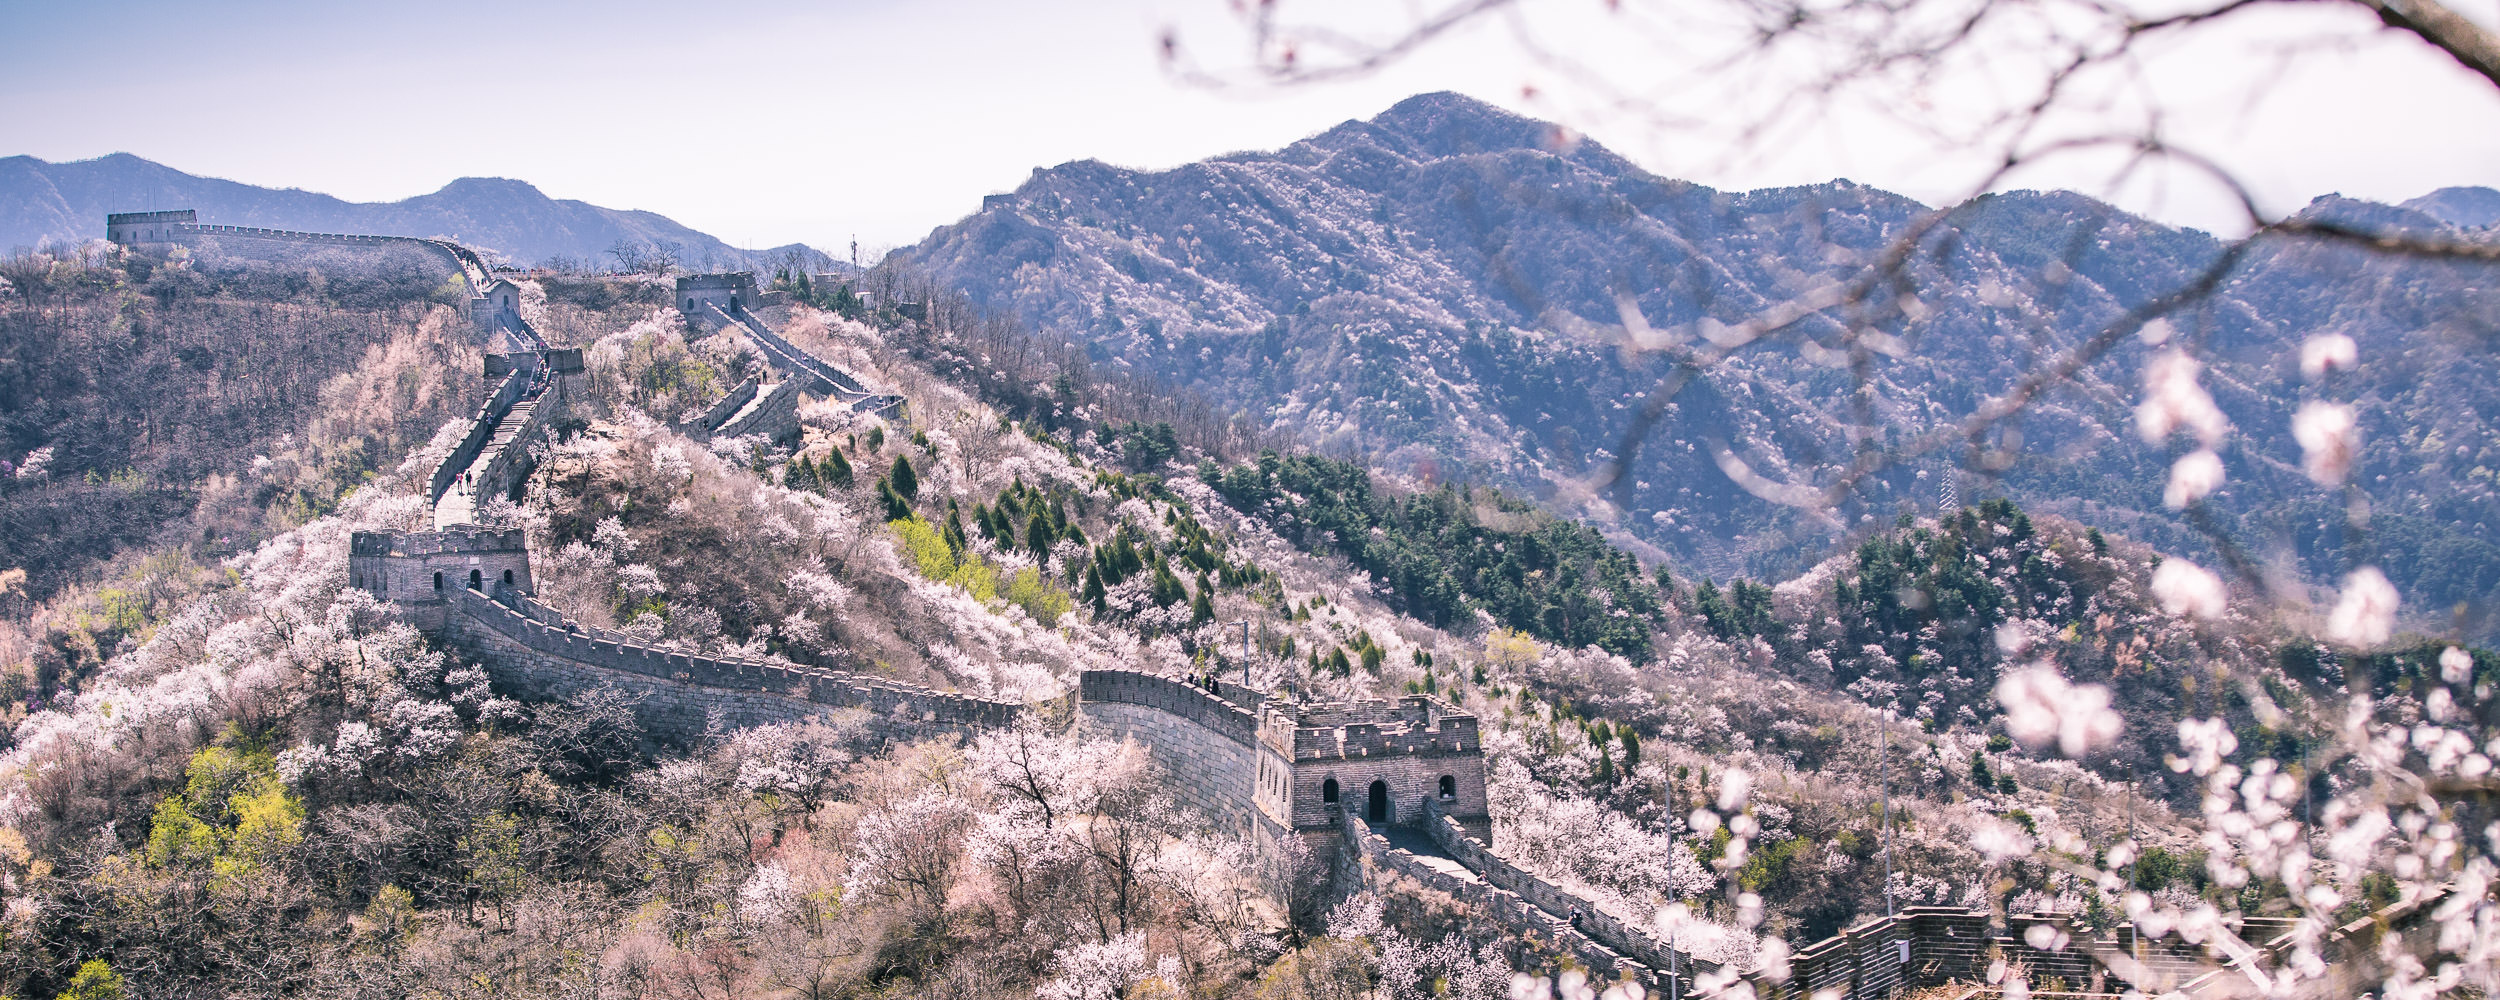 The Mutianyu segment of the Great Wall of China runs amidst apricot blossoms in early April.